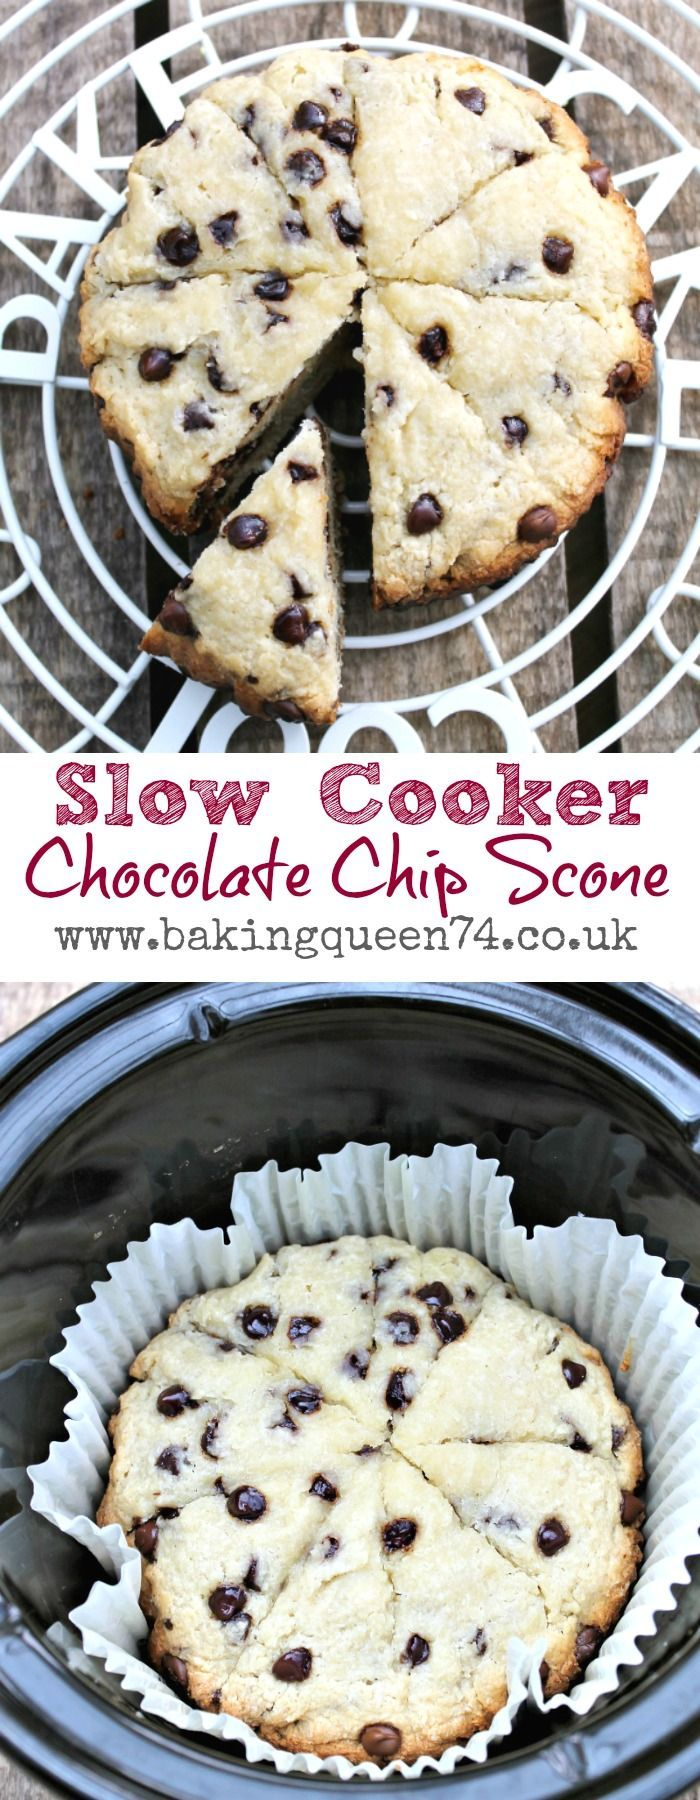 Slow Cooker Chocolate Chip Scones - so easy to make in your crockpot!